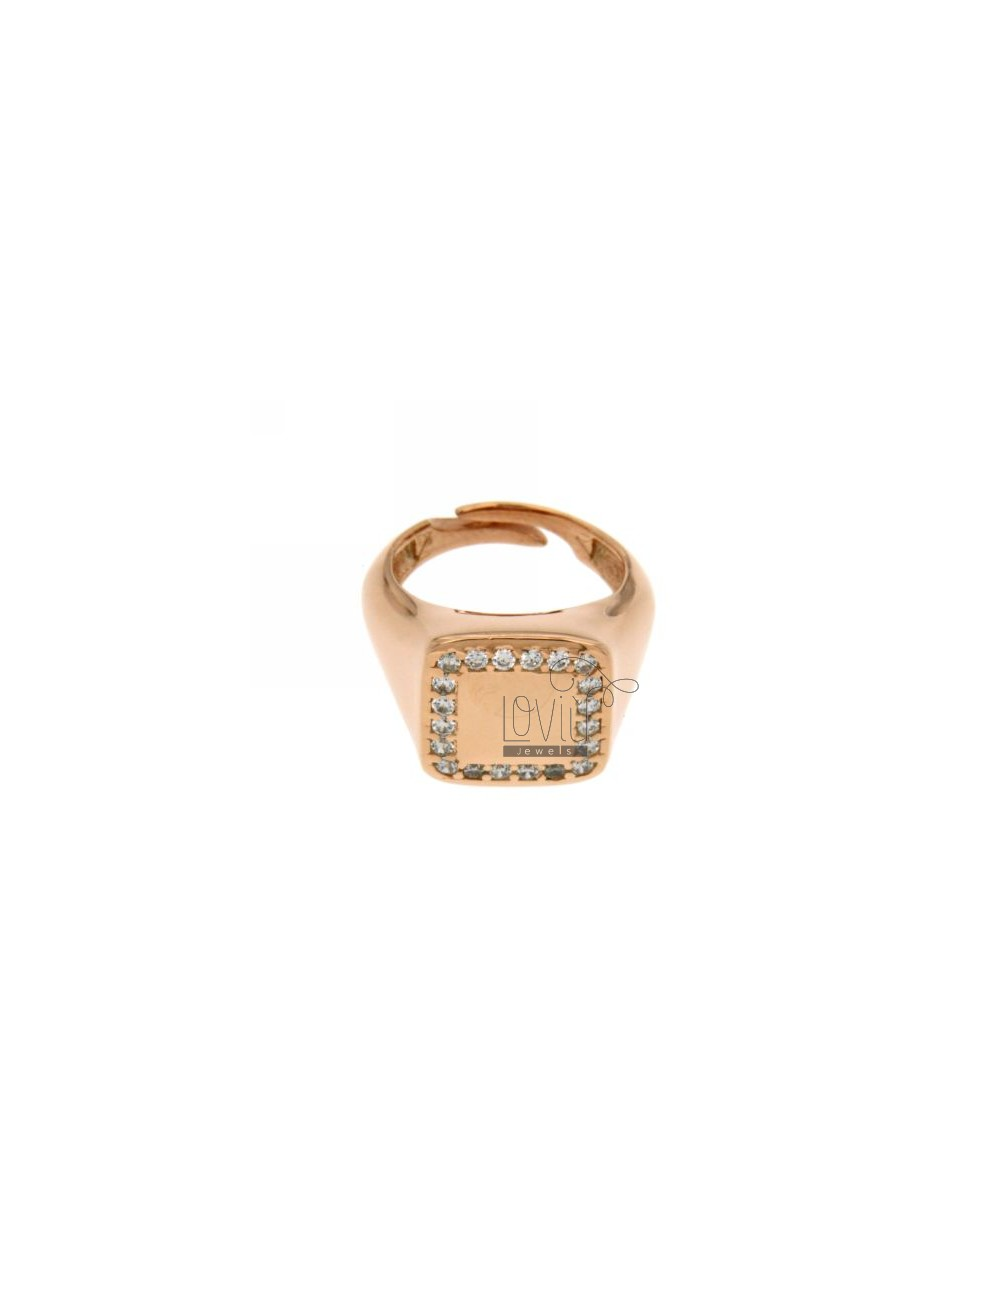 PINKY RING IN SILVER PLATED SQUARE ROSE GOLD 925 ‰ AND ZIRCONIA WHITE